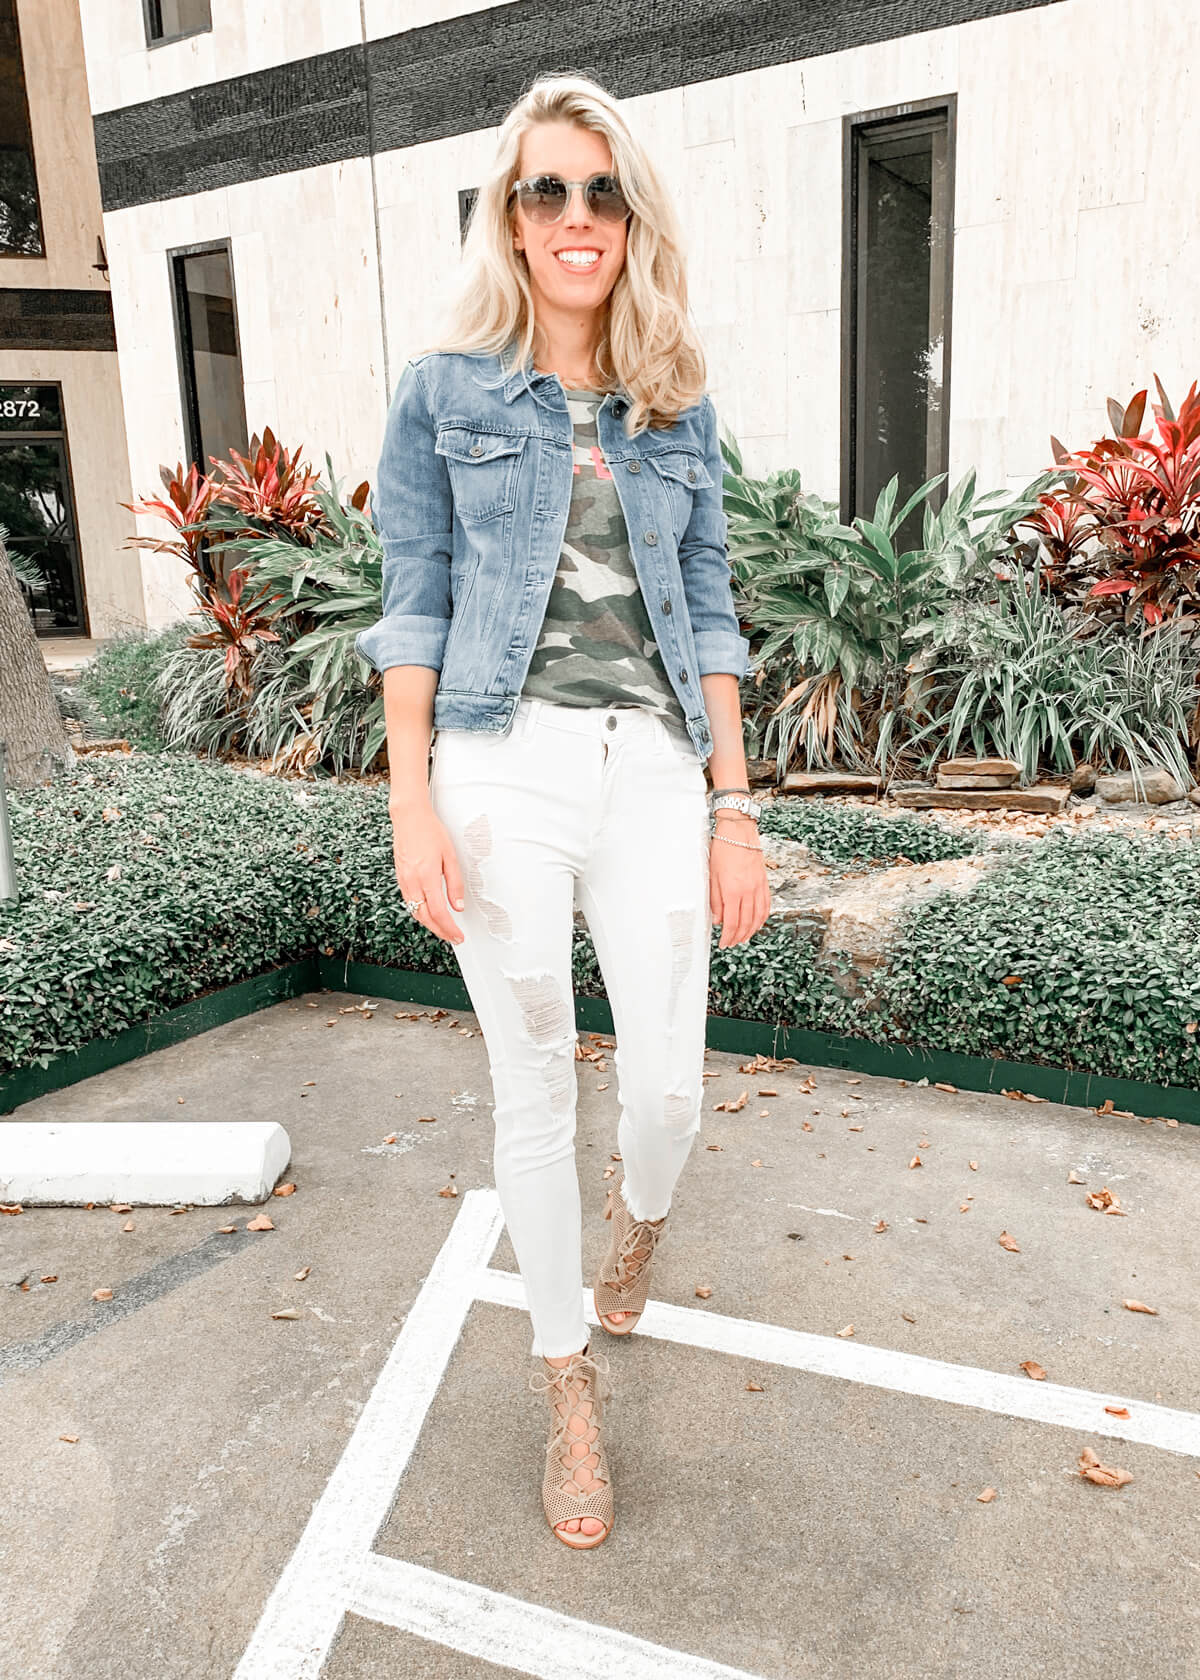 White Jeans Outfit Ideas - 5 Ways to Wear White Jeans | White Distressed Jeans and Blue Denim Blazer Outfit | White Jeans and Denim Jacket | White Jeans Camo Shirt Outfit | Mother Make Love Camo Tee | Paige Rowan Denim Jacket | Just Black Denim Distressed Jeans in White